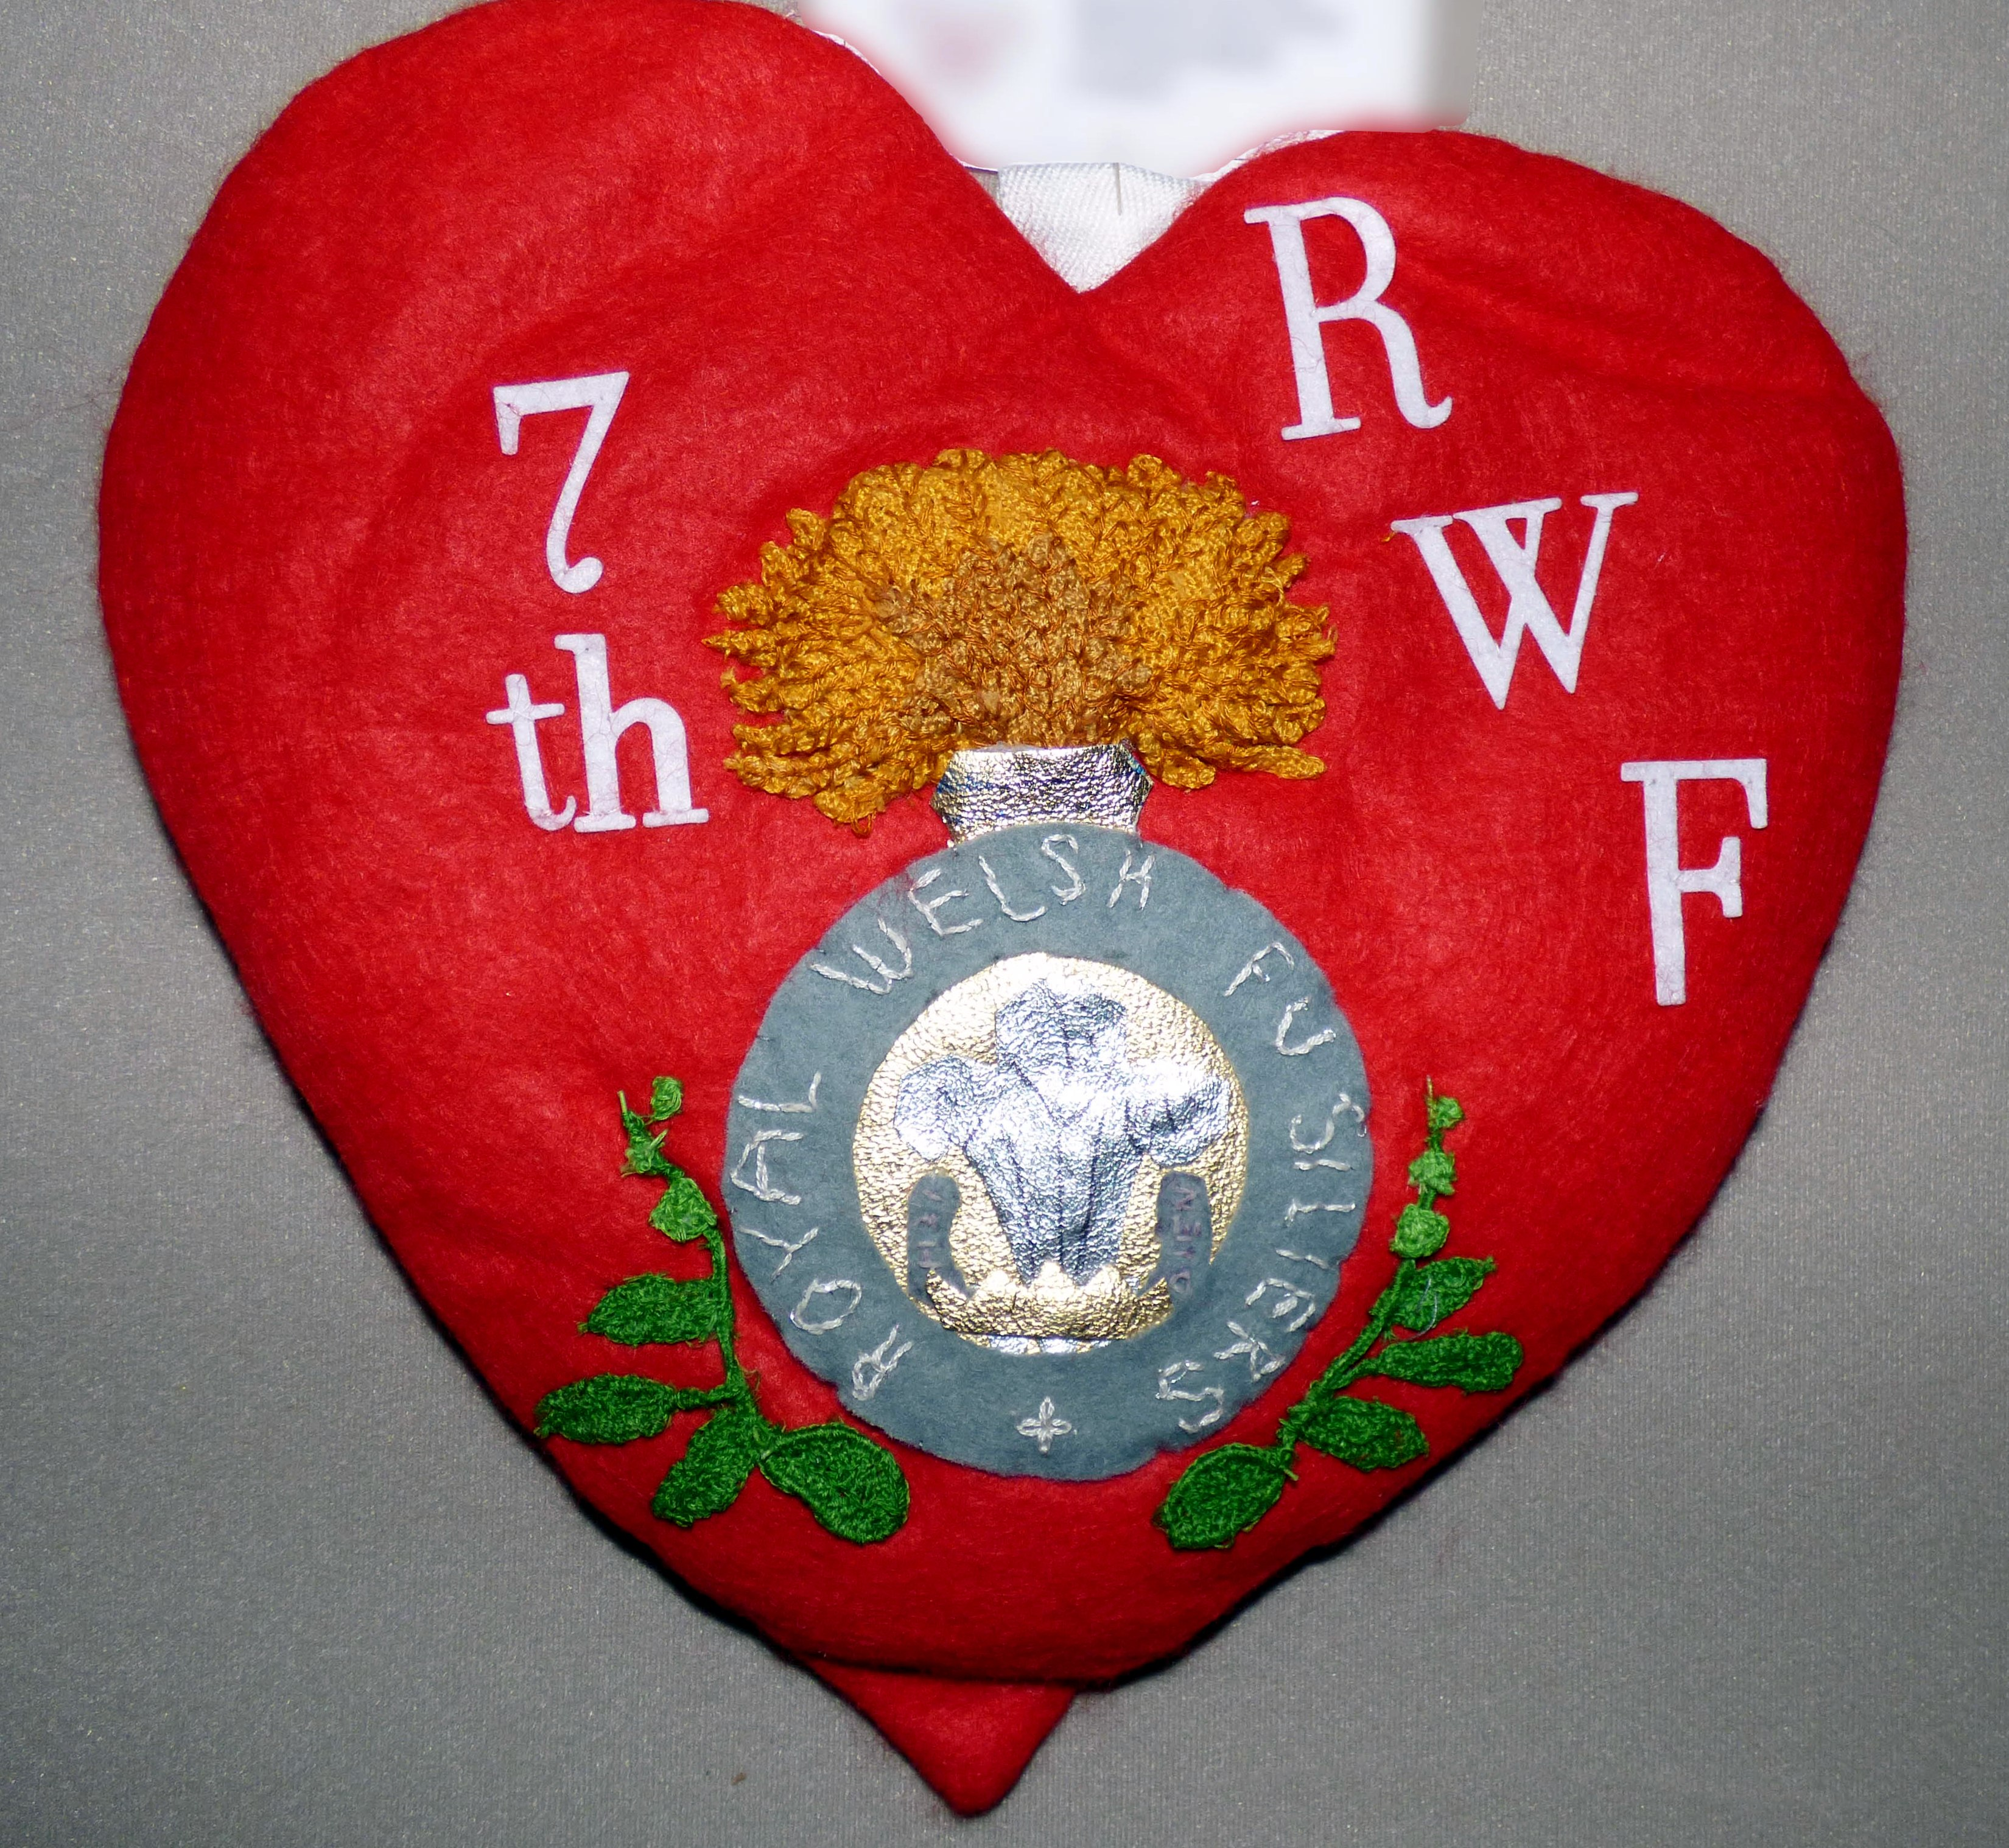 IN MEMORY OF THE NEWTOWN MEN OF THE 7TH ROYAL WELSH FUSILIERS by Joy Hamer, 100 Hearts exhibition, Liverpool Cathedral, Sept 2018